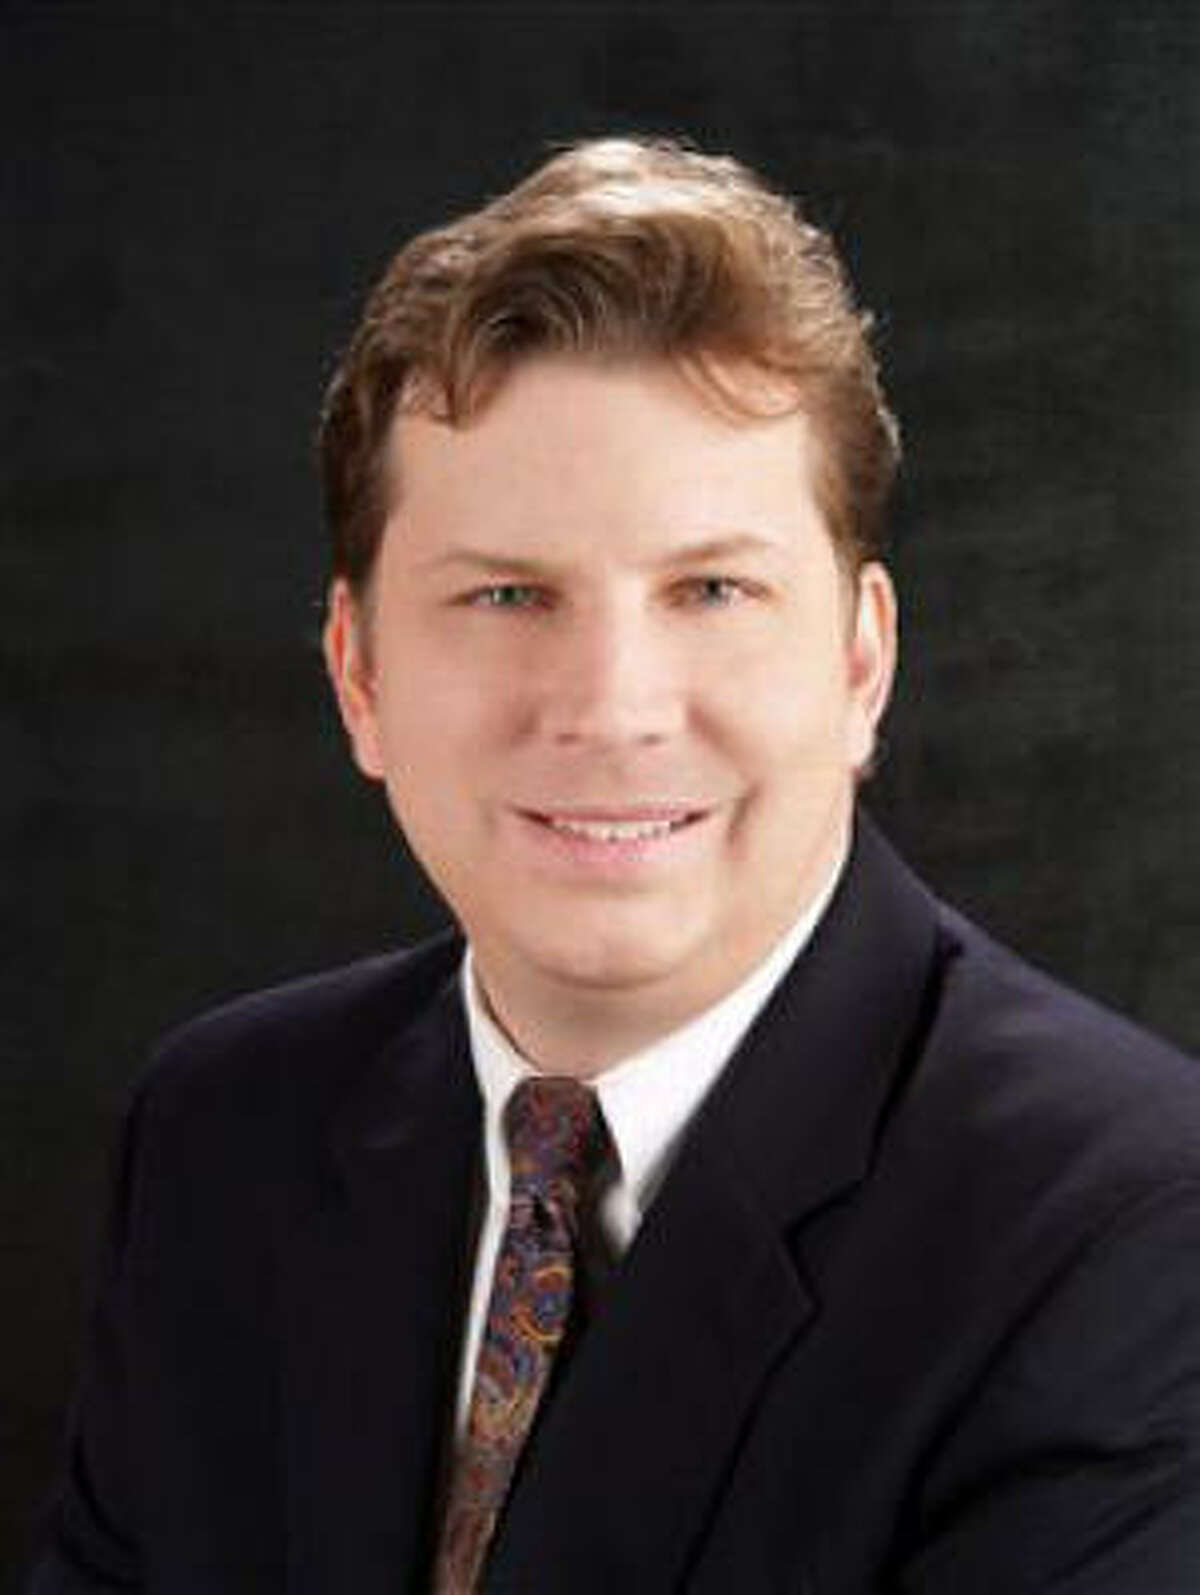 Around 5 percent of likely voters favor Libertarian Scott Lanier Jameson of Plano, according to the poll.